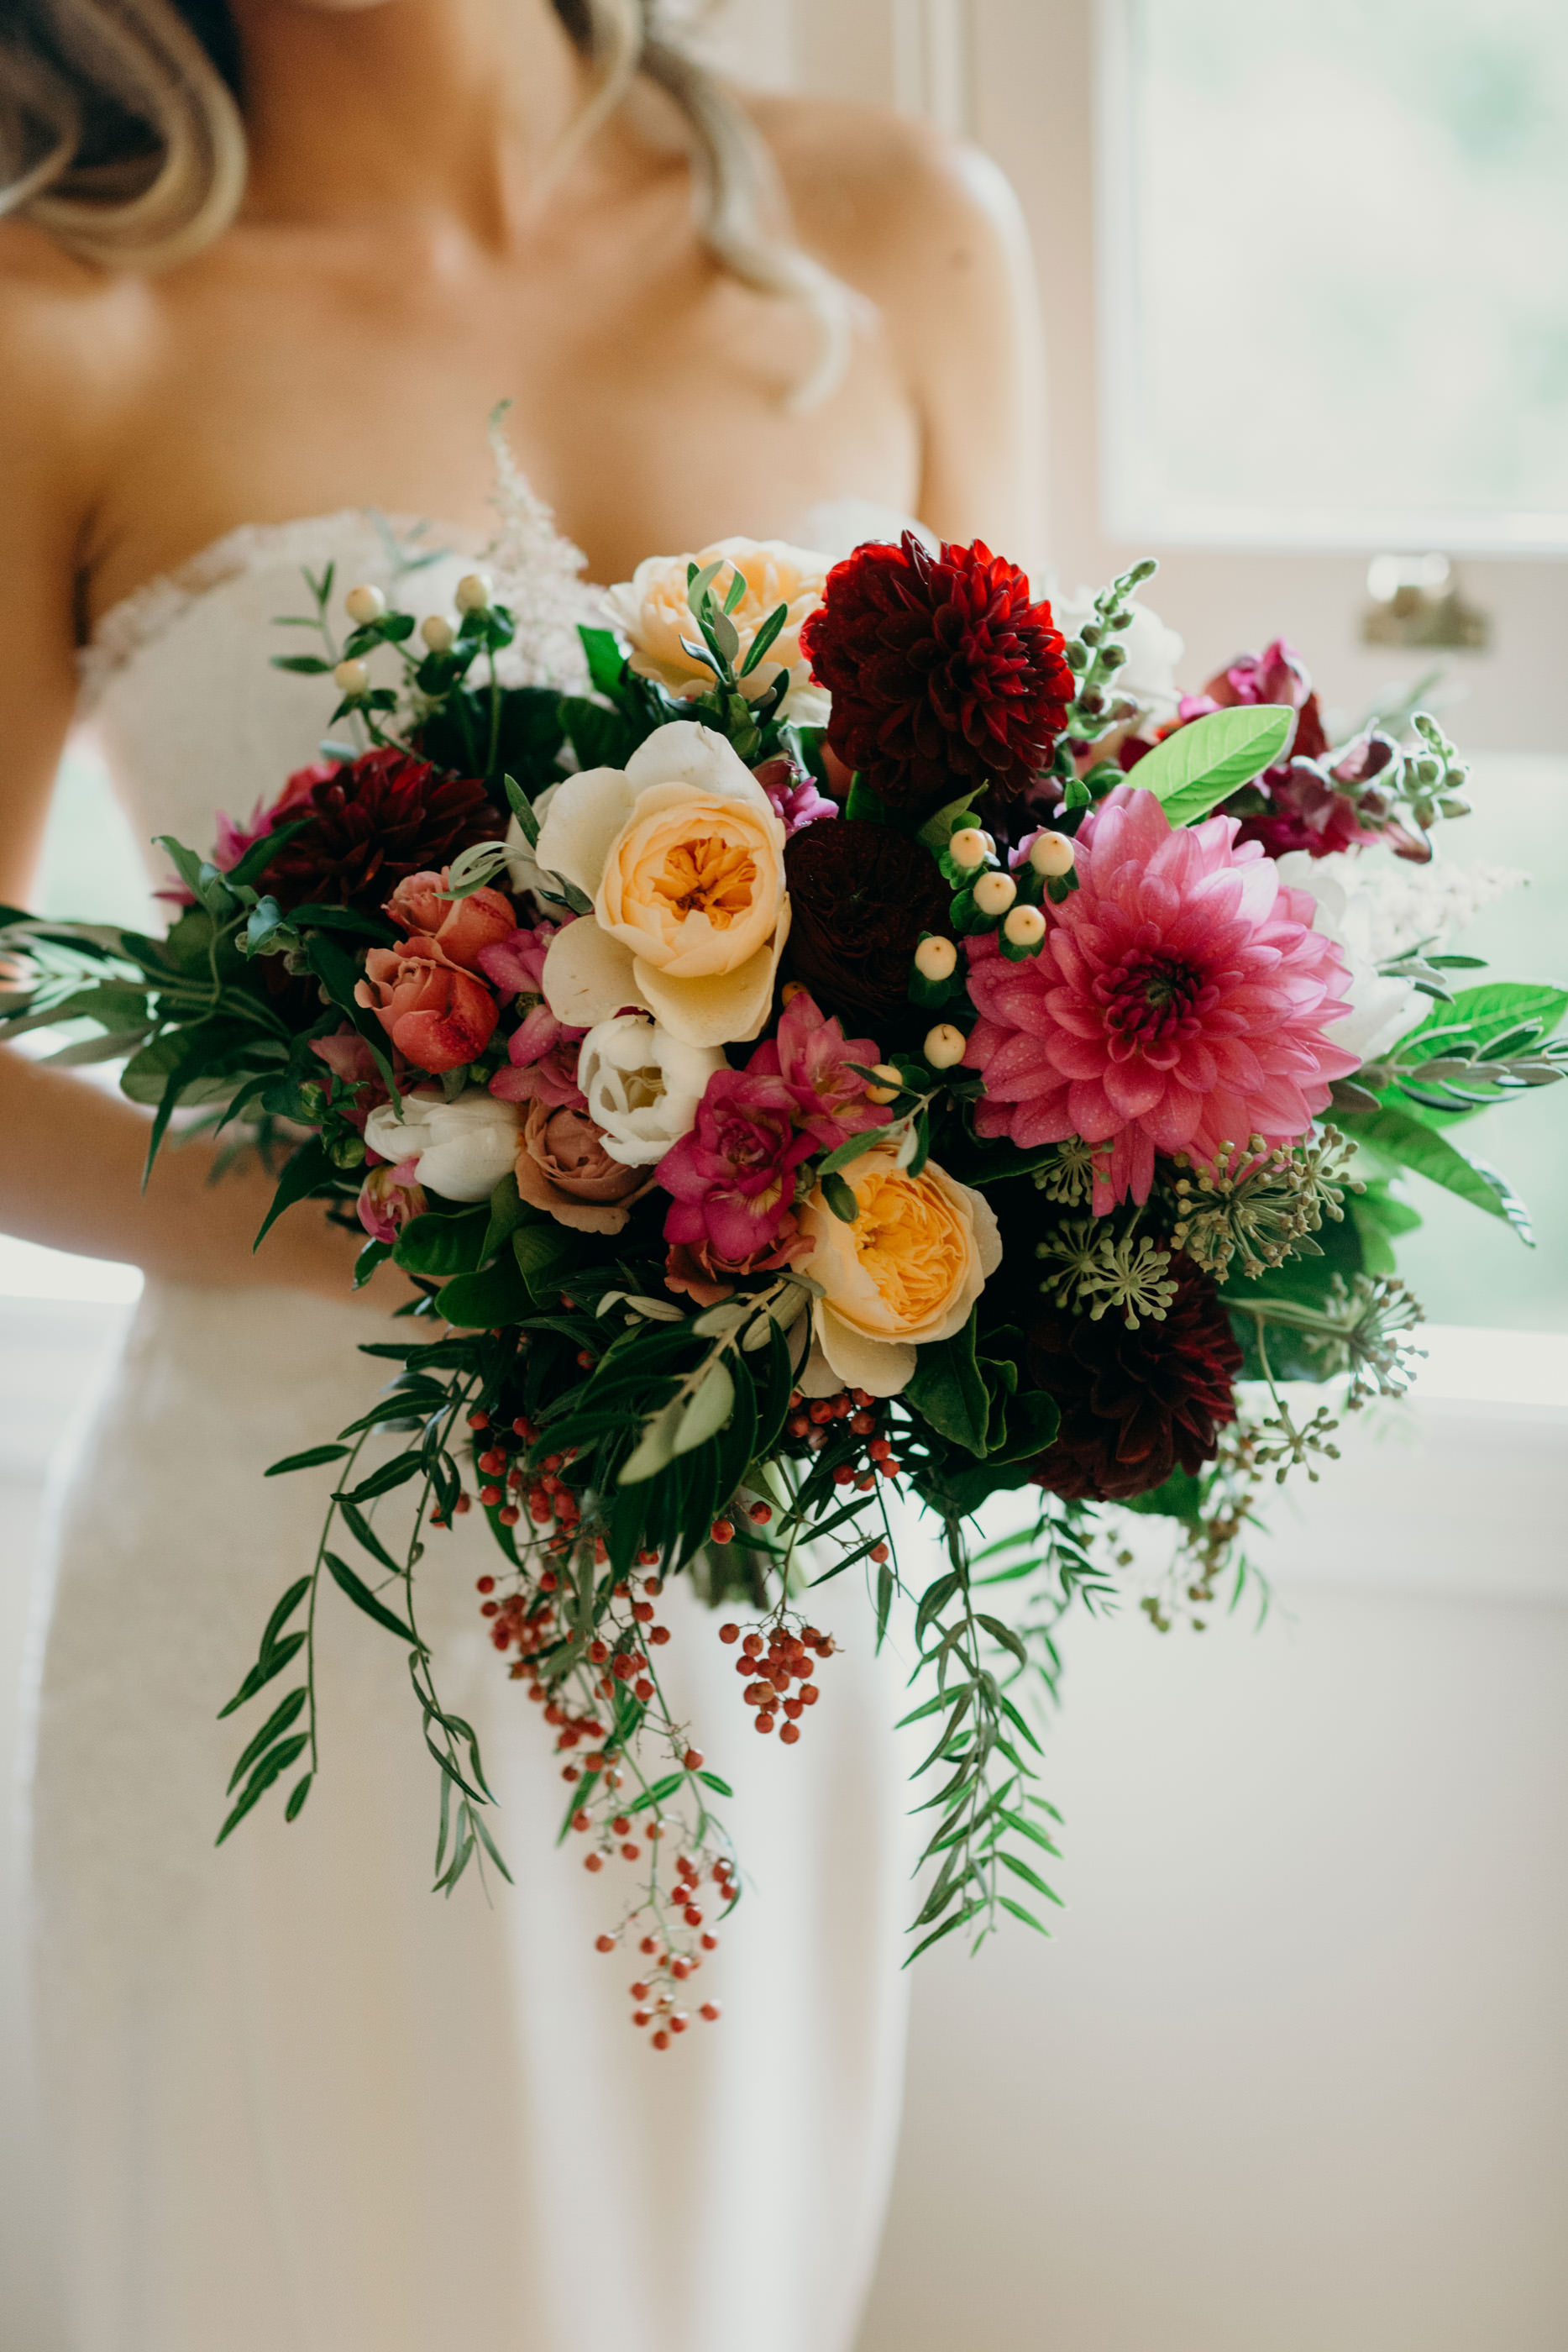 Winter wedding bouquet featuring dahlias